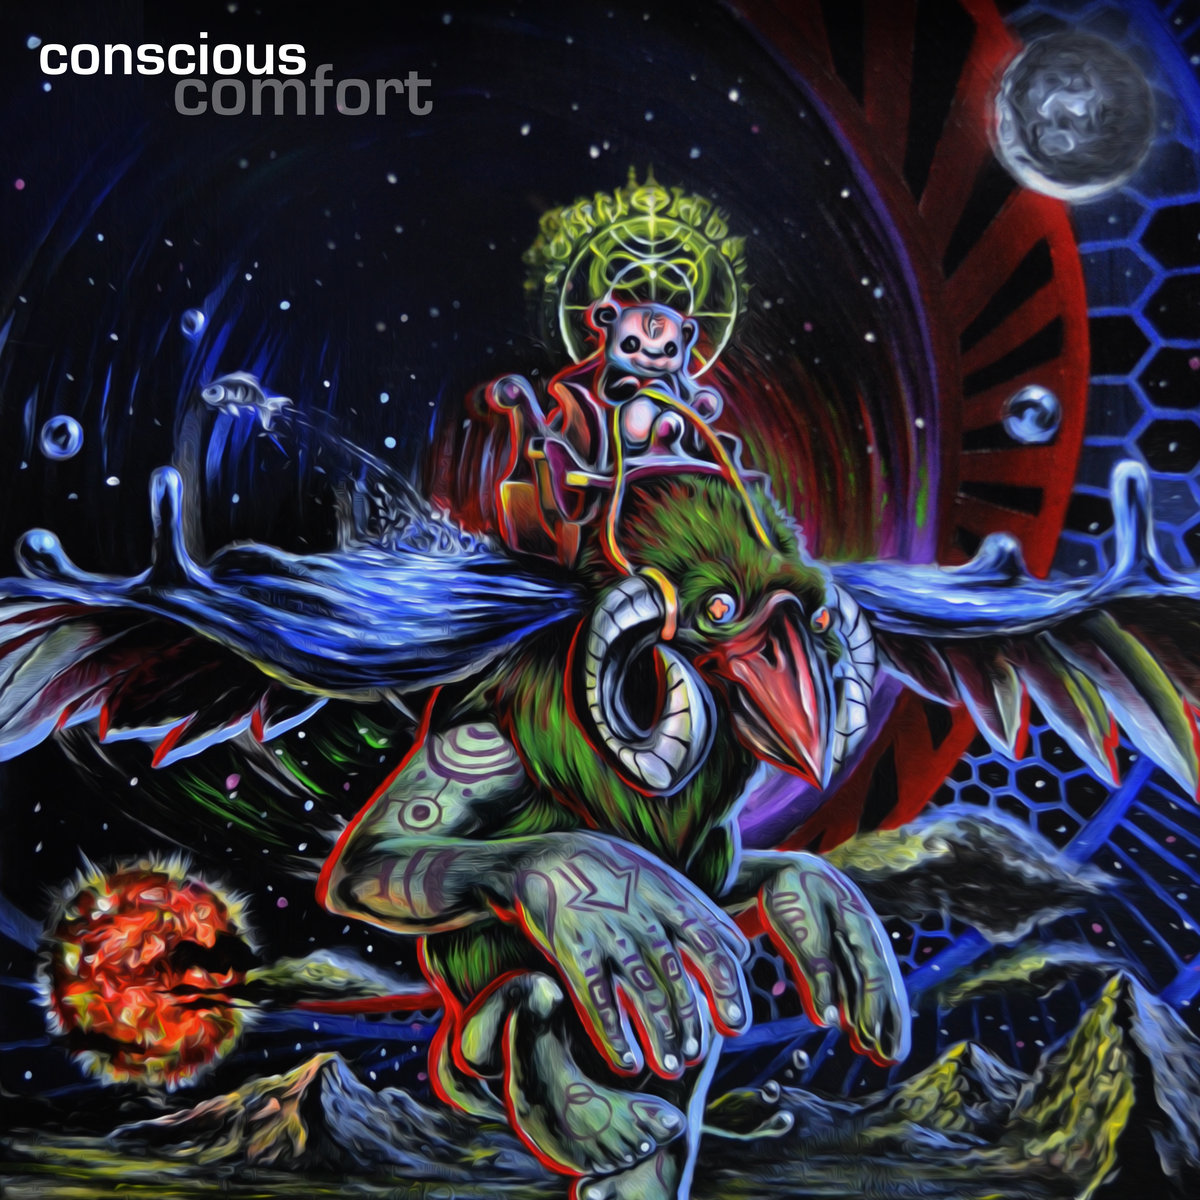 Ryanosaurus & Dirty Hippy - Birth Of A Thought @ 'Conscious Comfort' album (electronic, idm)